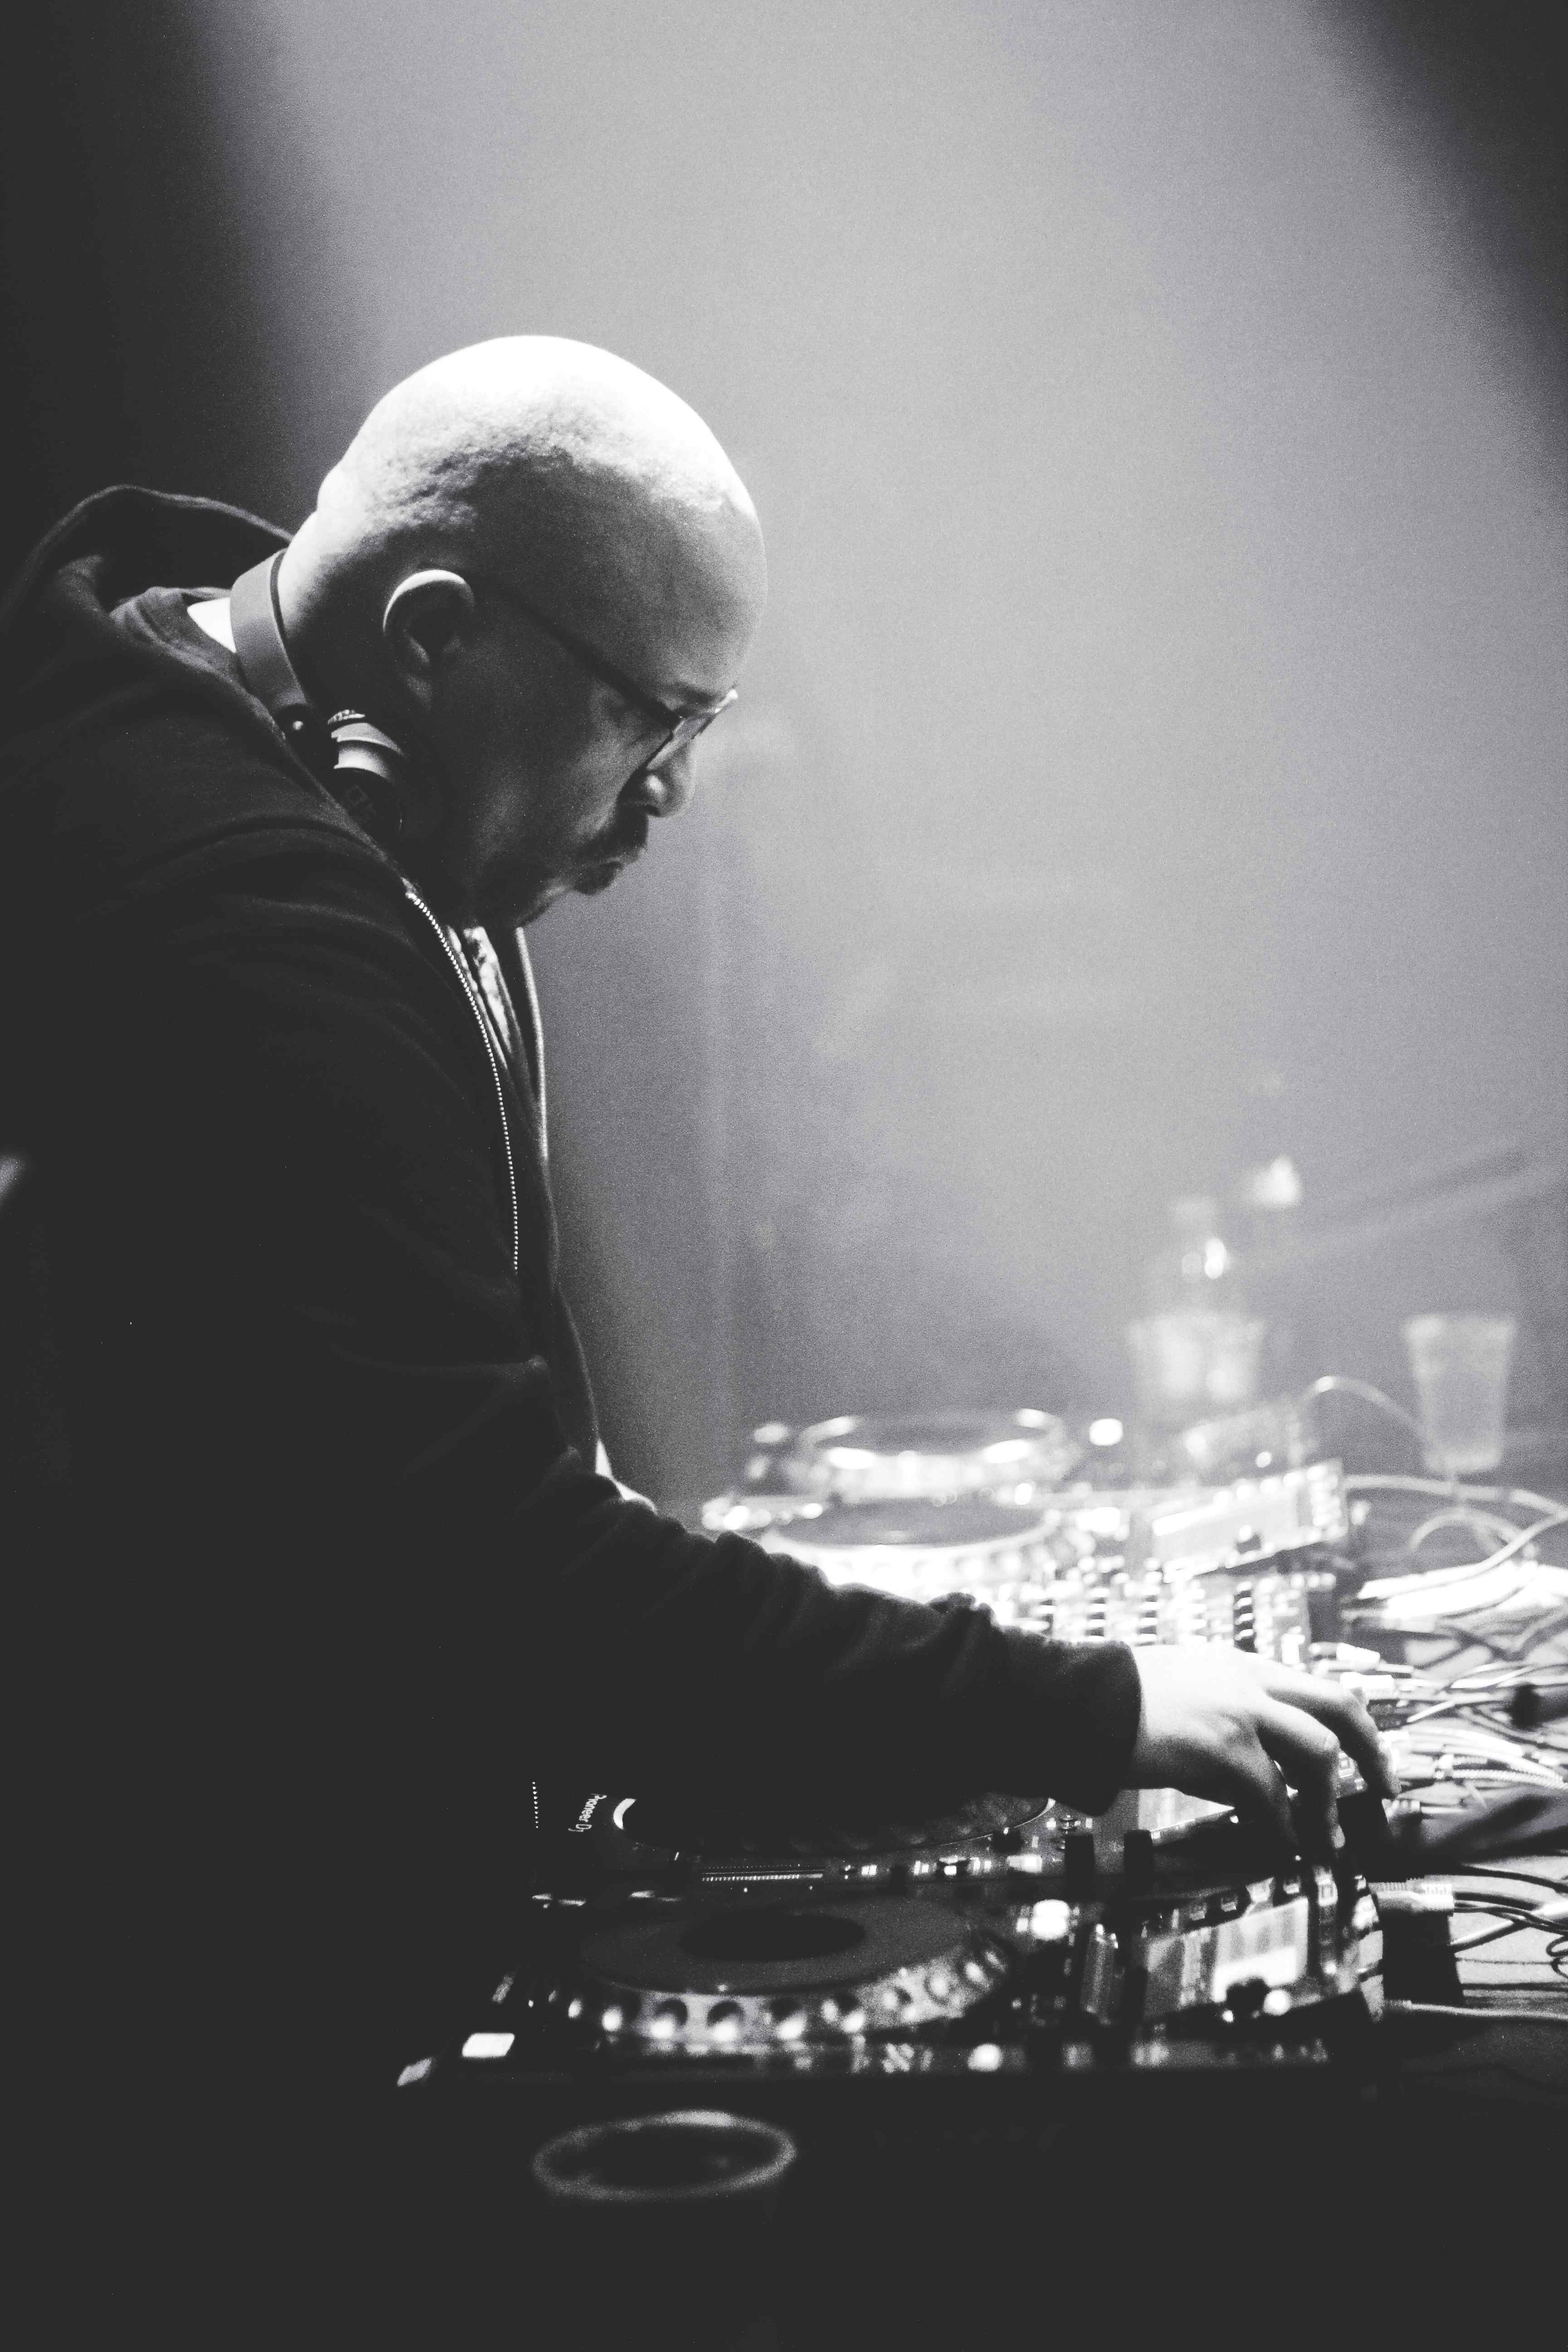 dBridge is the uncompromising producer pushing the boundaries of drum & bass